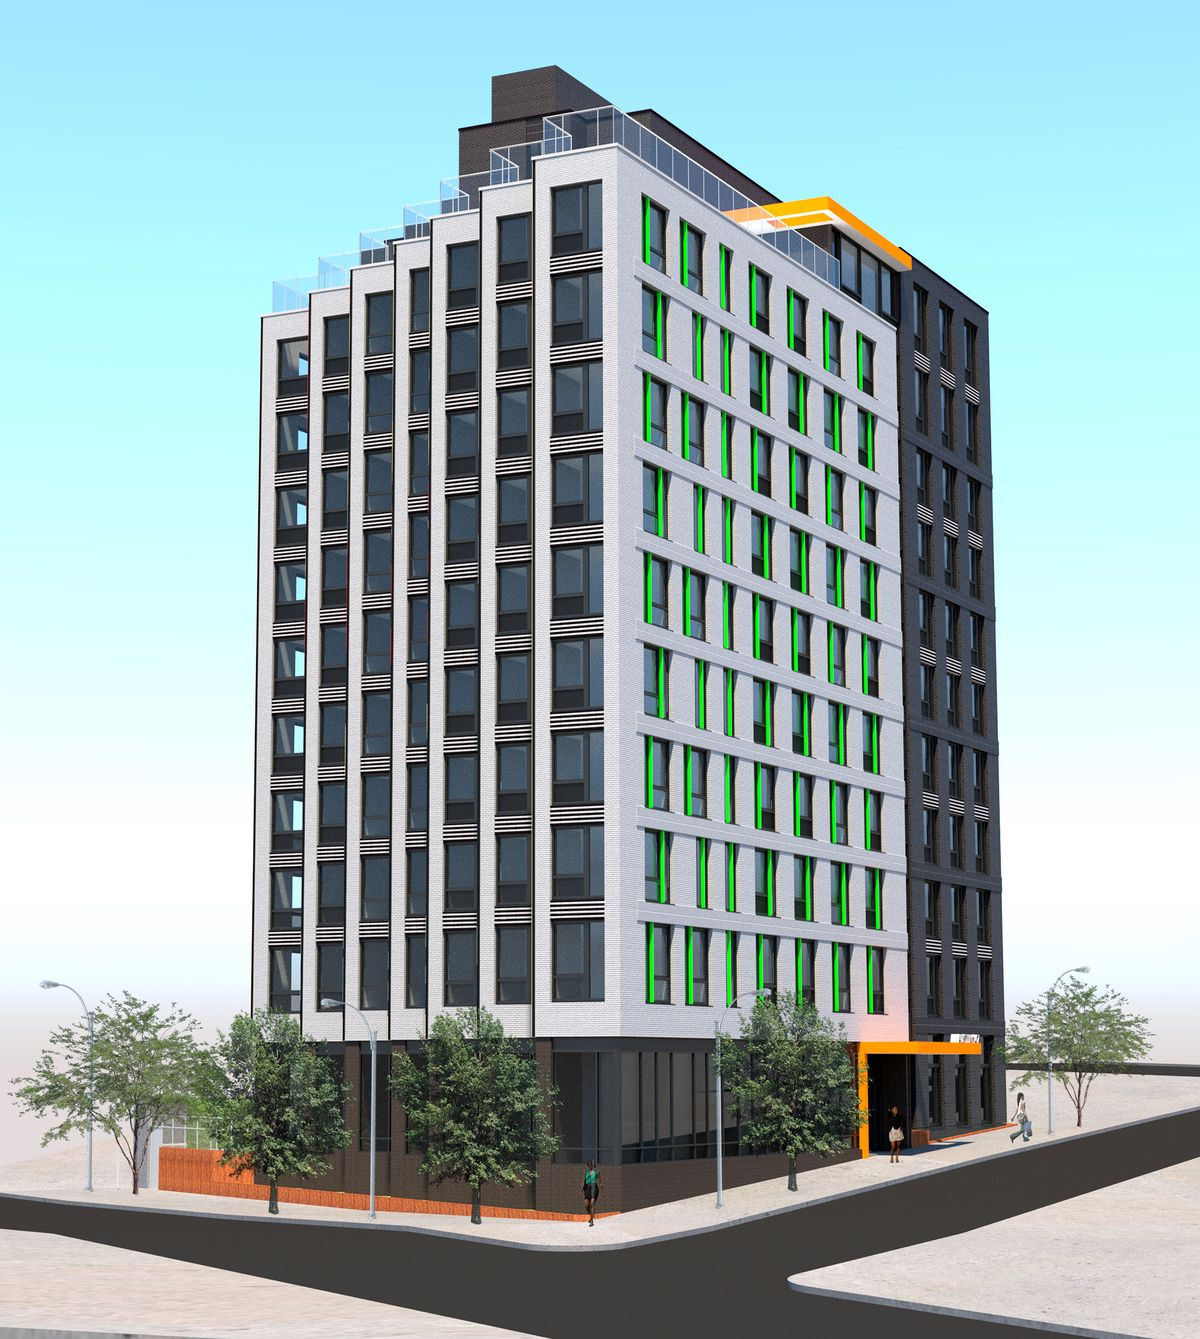 Mott Haven Will Get 80 Affordable Apartments For Low- And